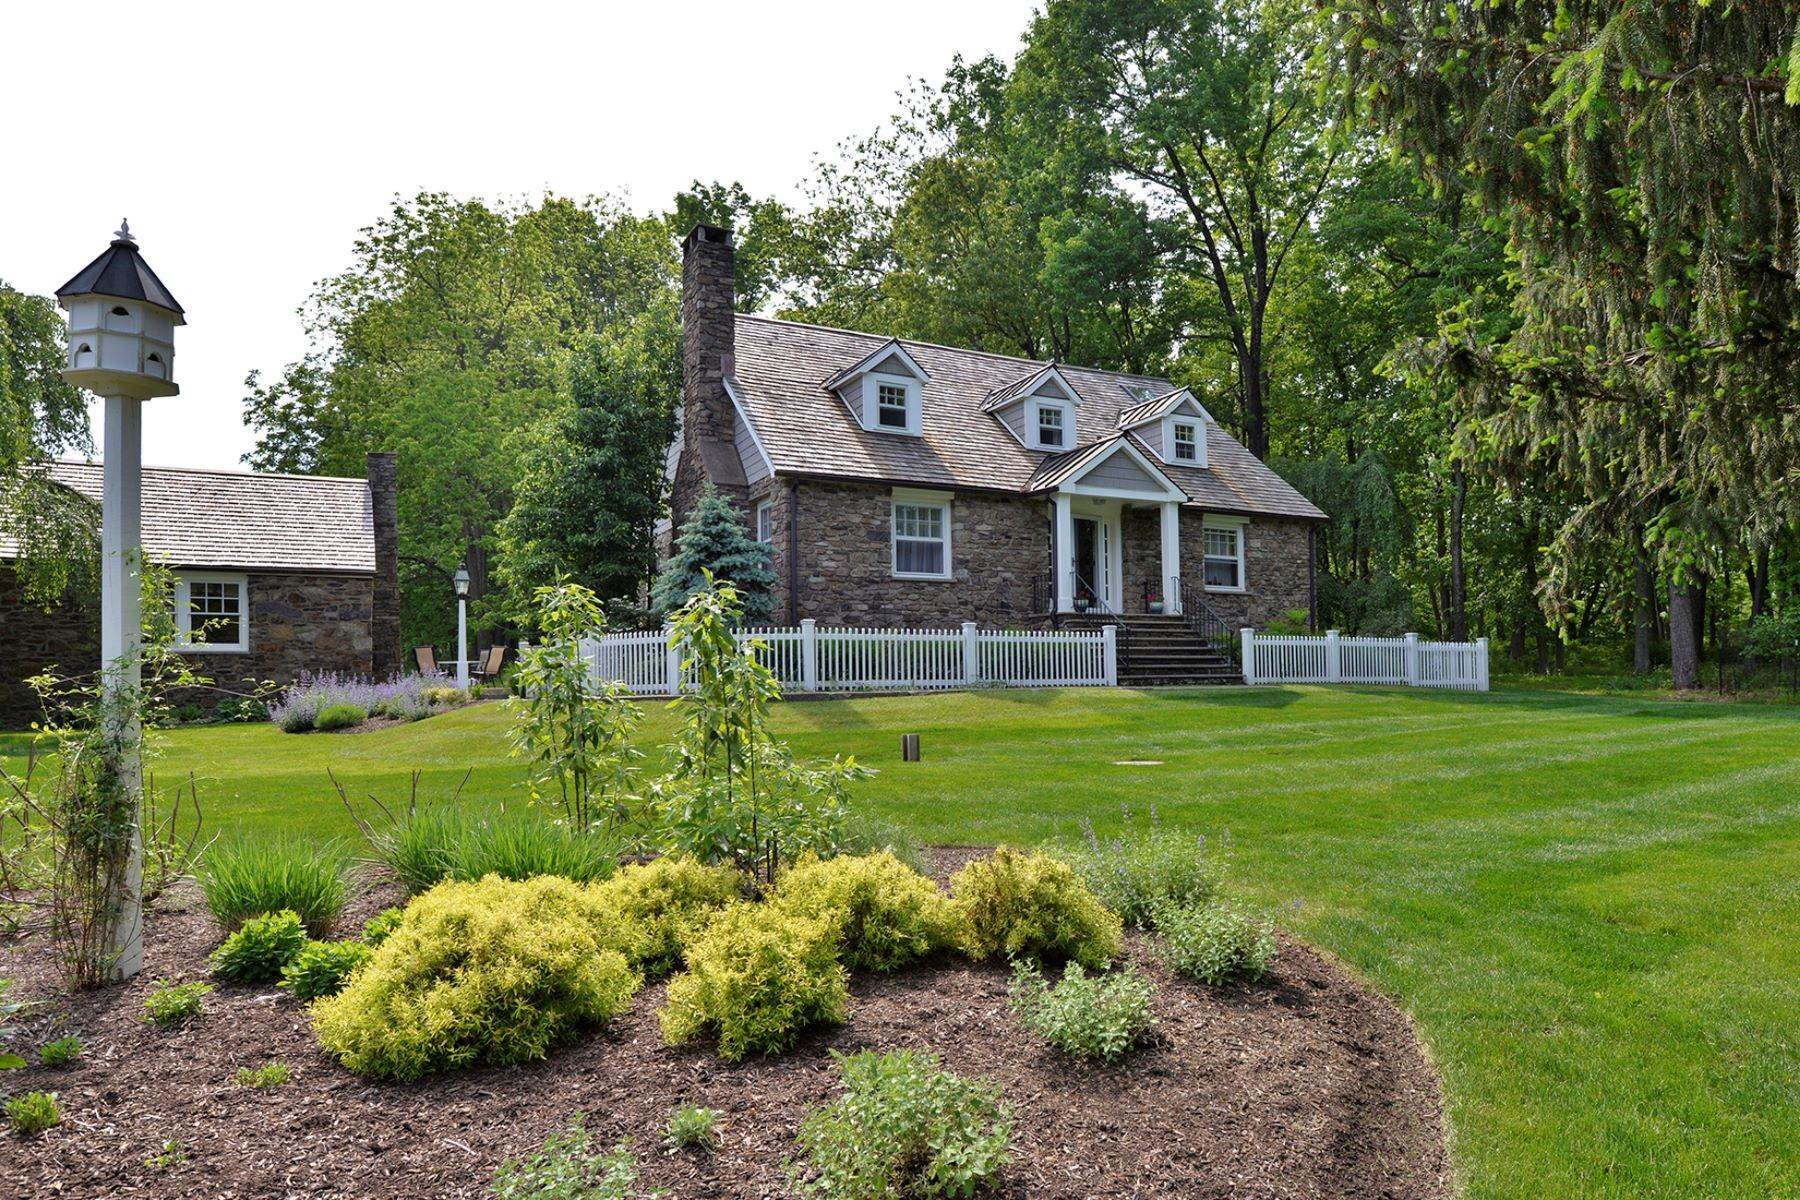 5. Single Family Homes for Sale at Experience History & Artistry at Stone Creek Farm 55 Strimples Mill Road, Stockton, New Jersey 08559 United States